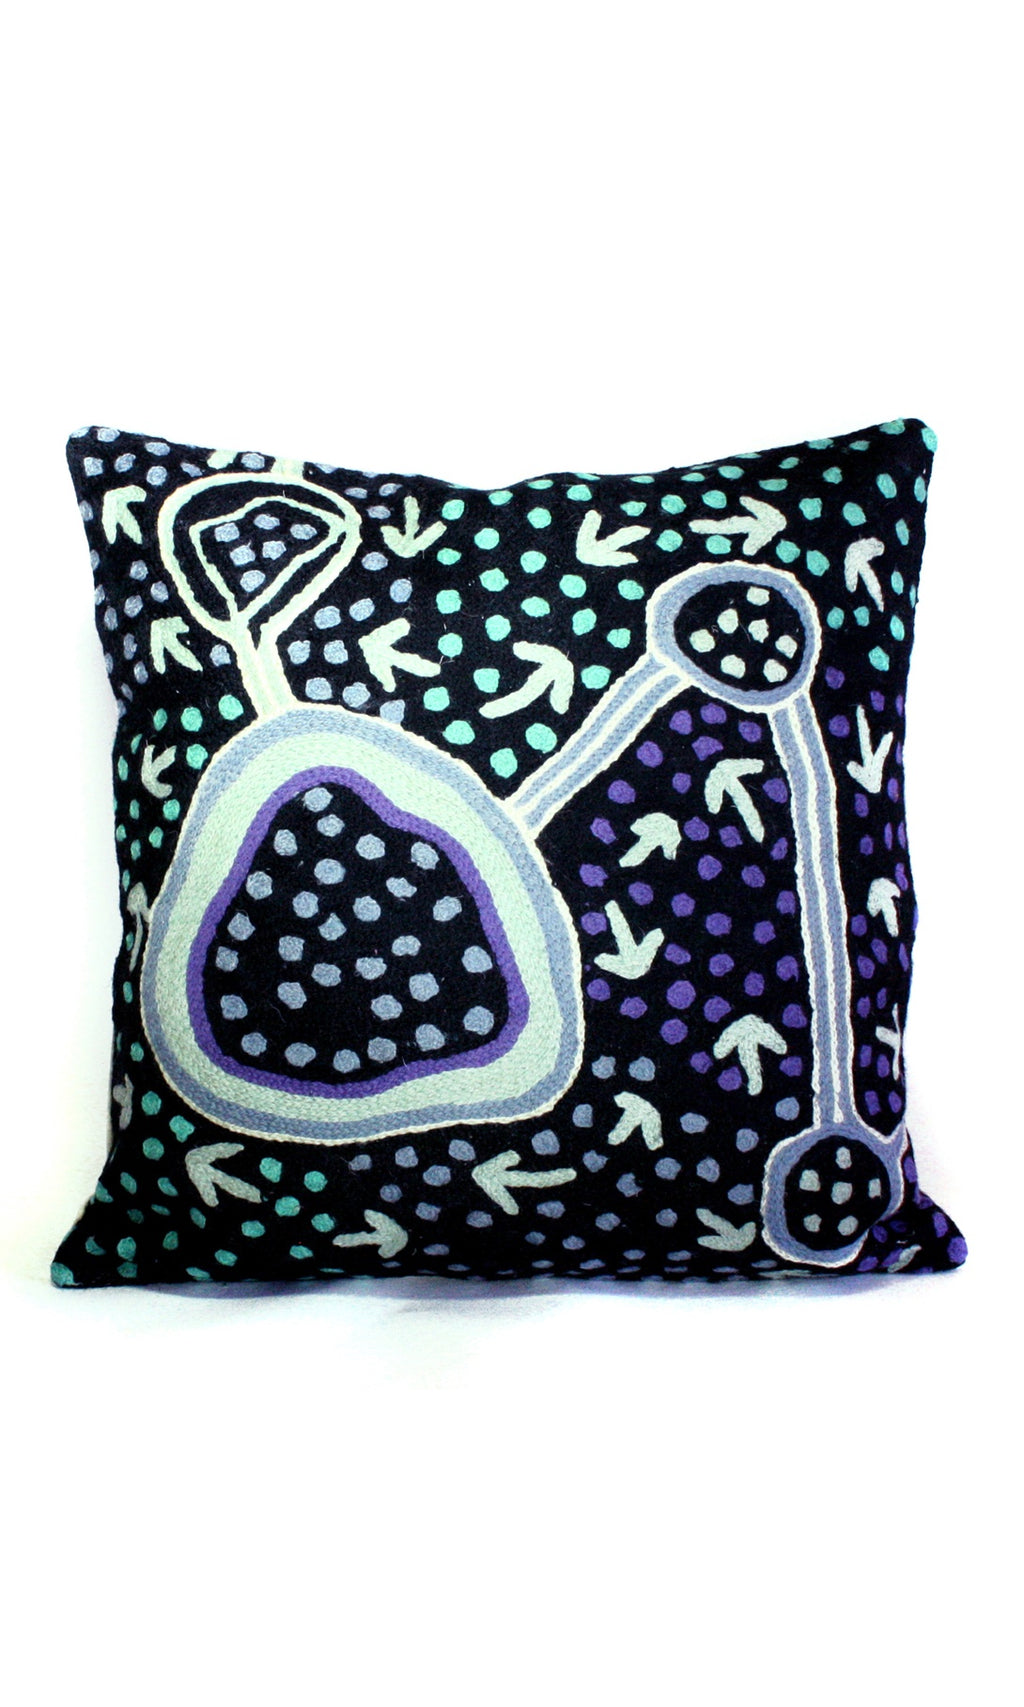 Aboriginal Art Cushion Cover by Pauline Nampijinpa Singleton